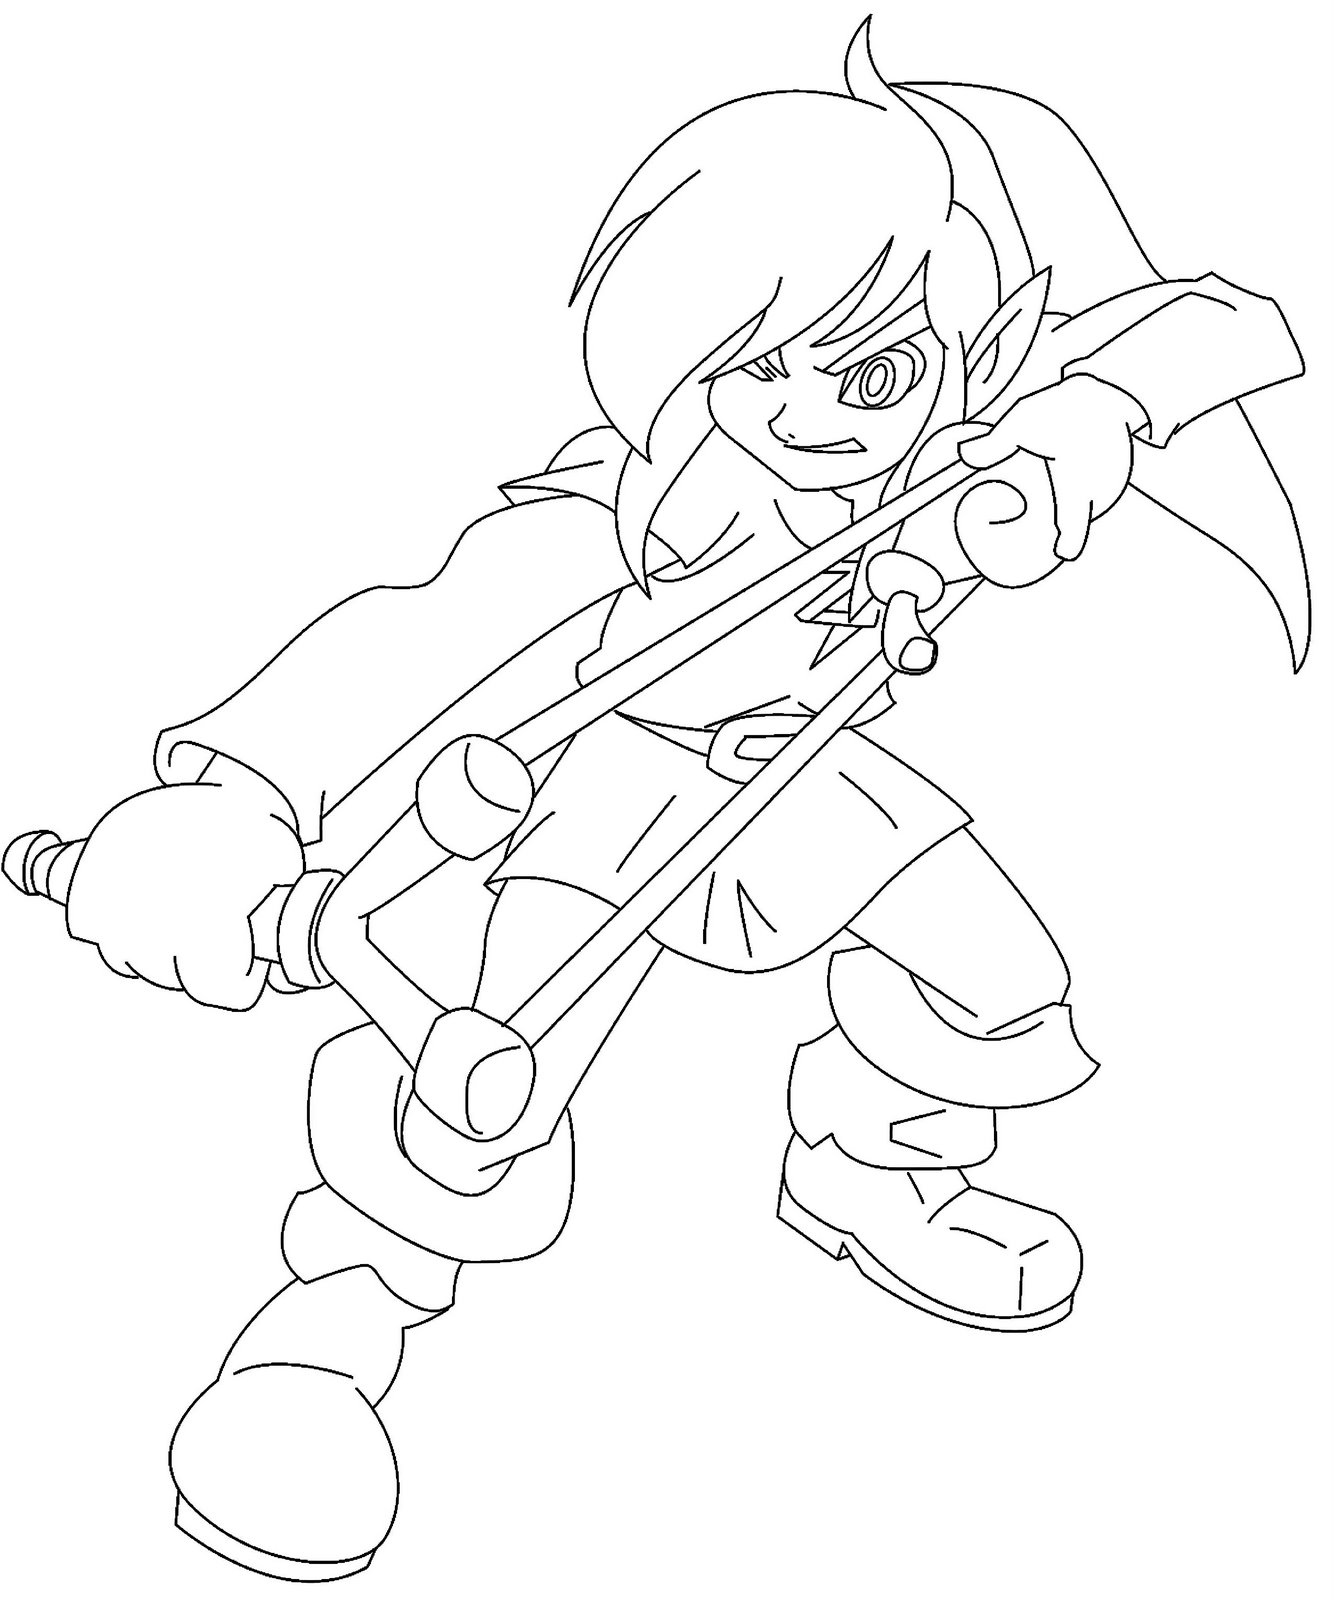 Majoras wrath coloring pages ~ Legend Of Zelda Link Coloring Pages at GetDrawings.com ...